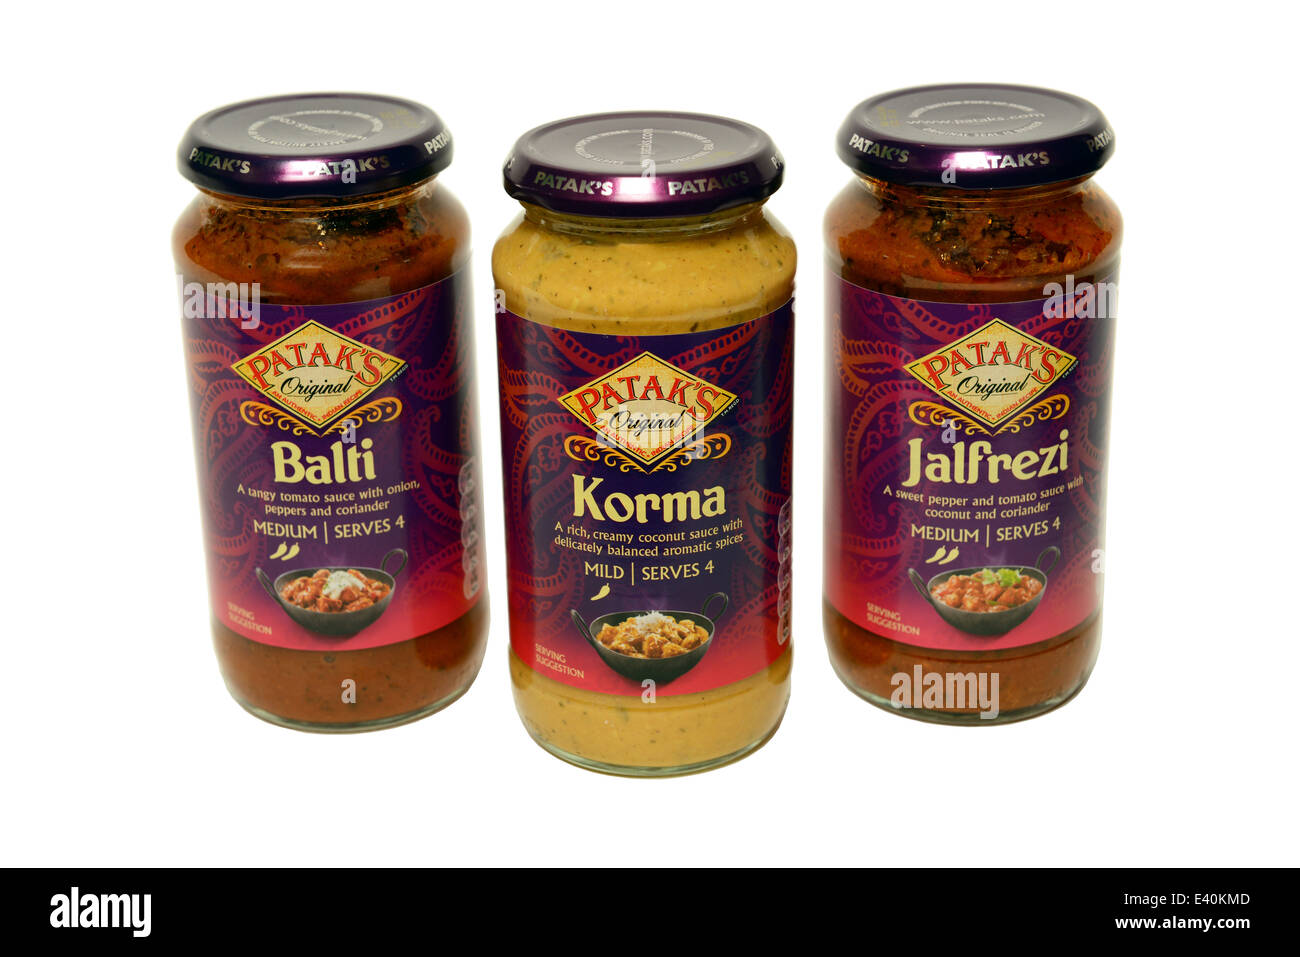 Patak's Curry Sauce - Stock Image